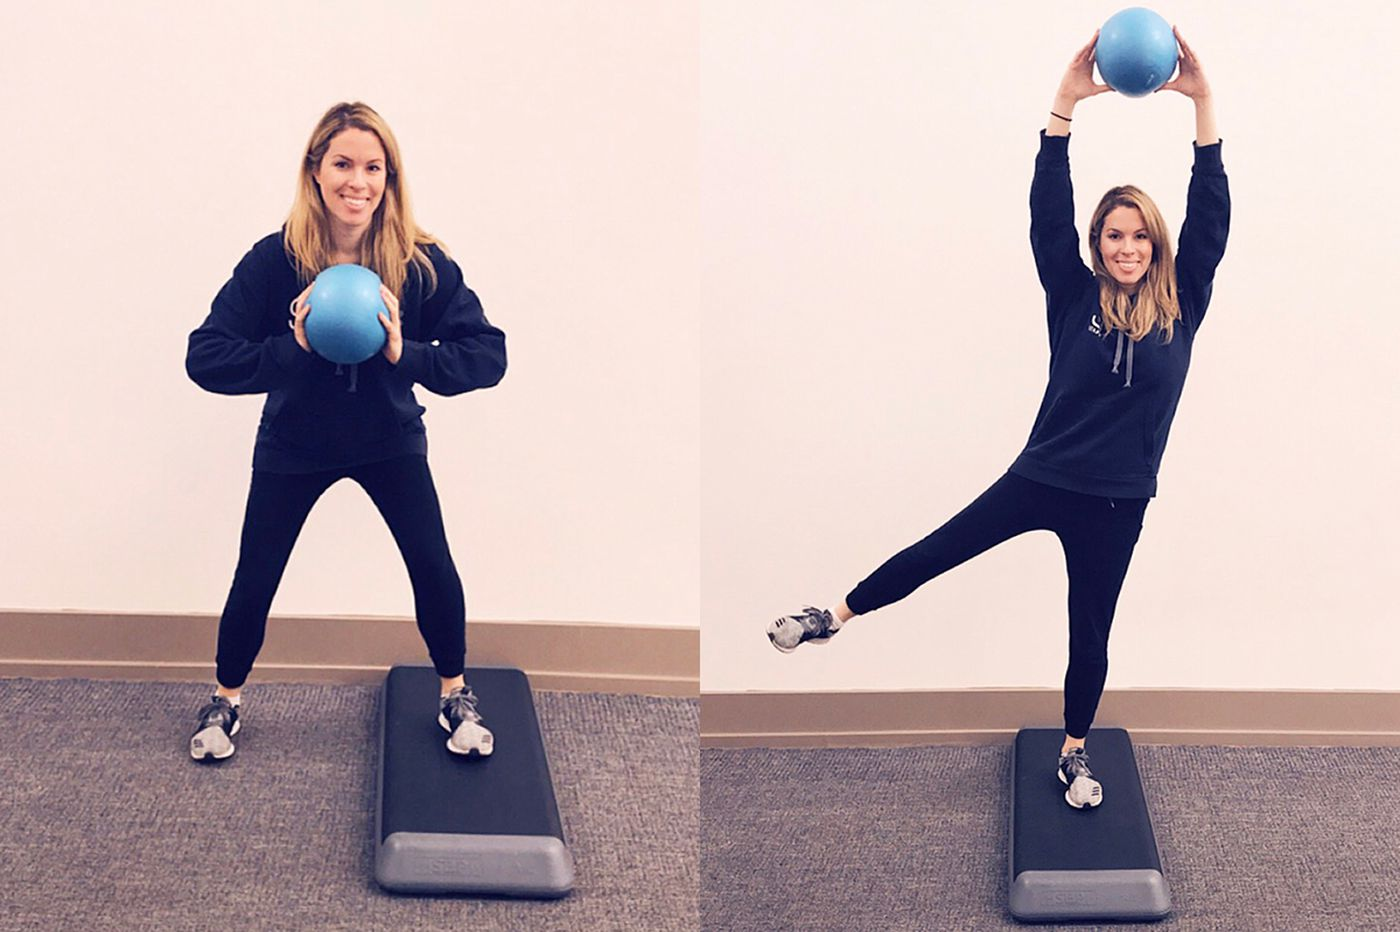 4 exercises for preventing winter-related injuries